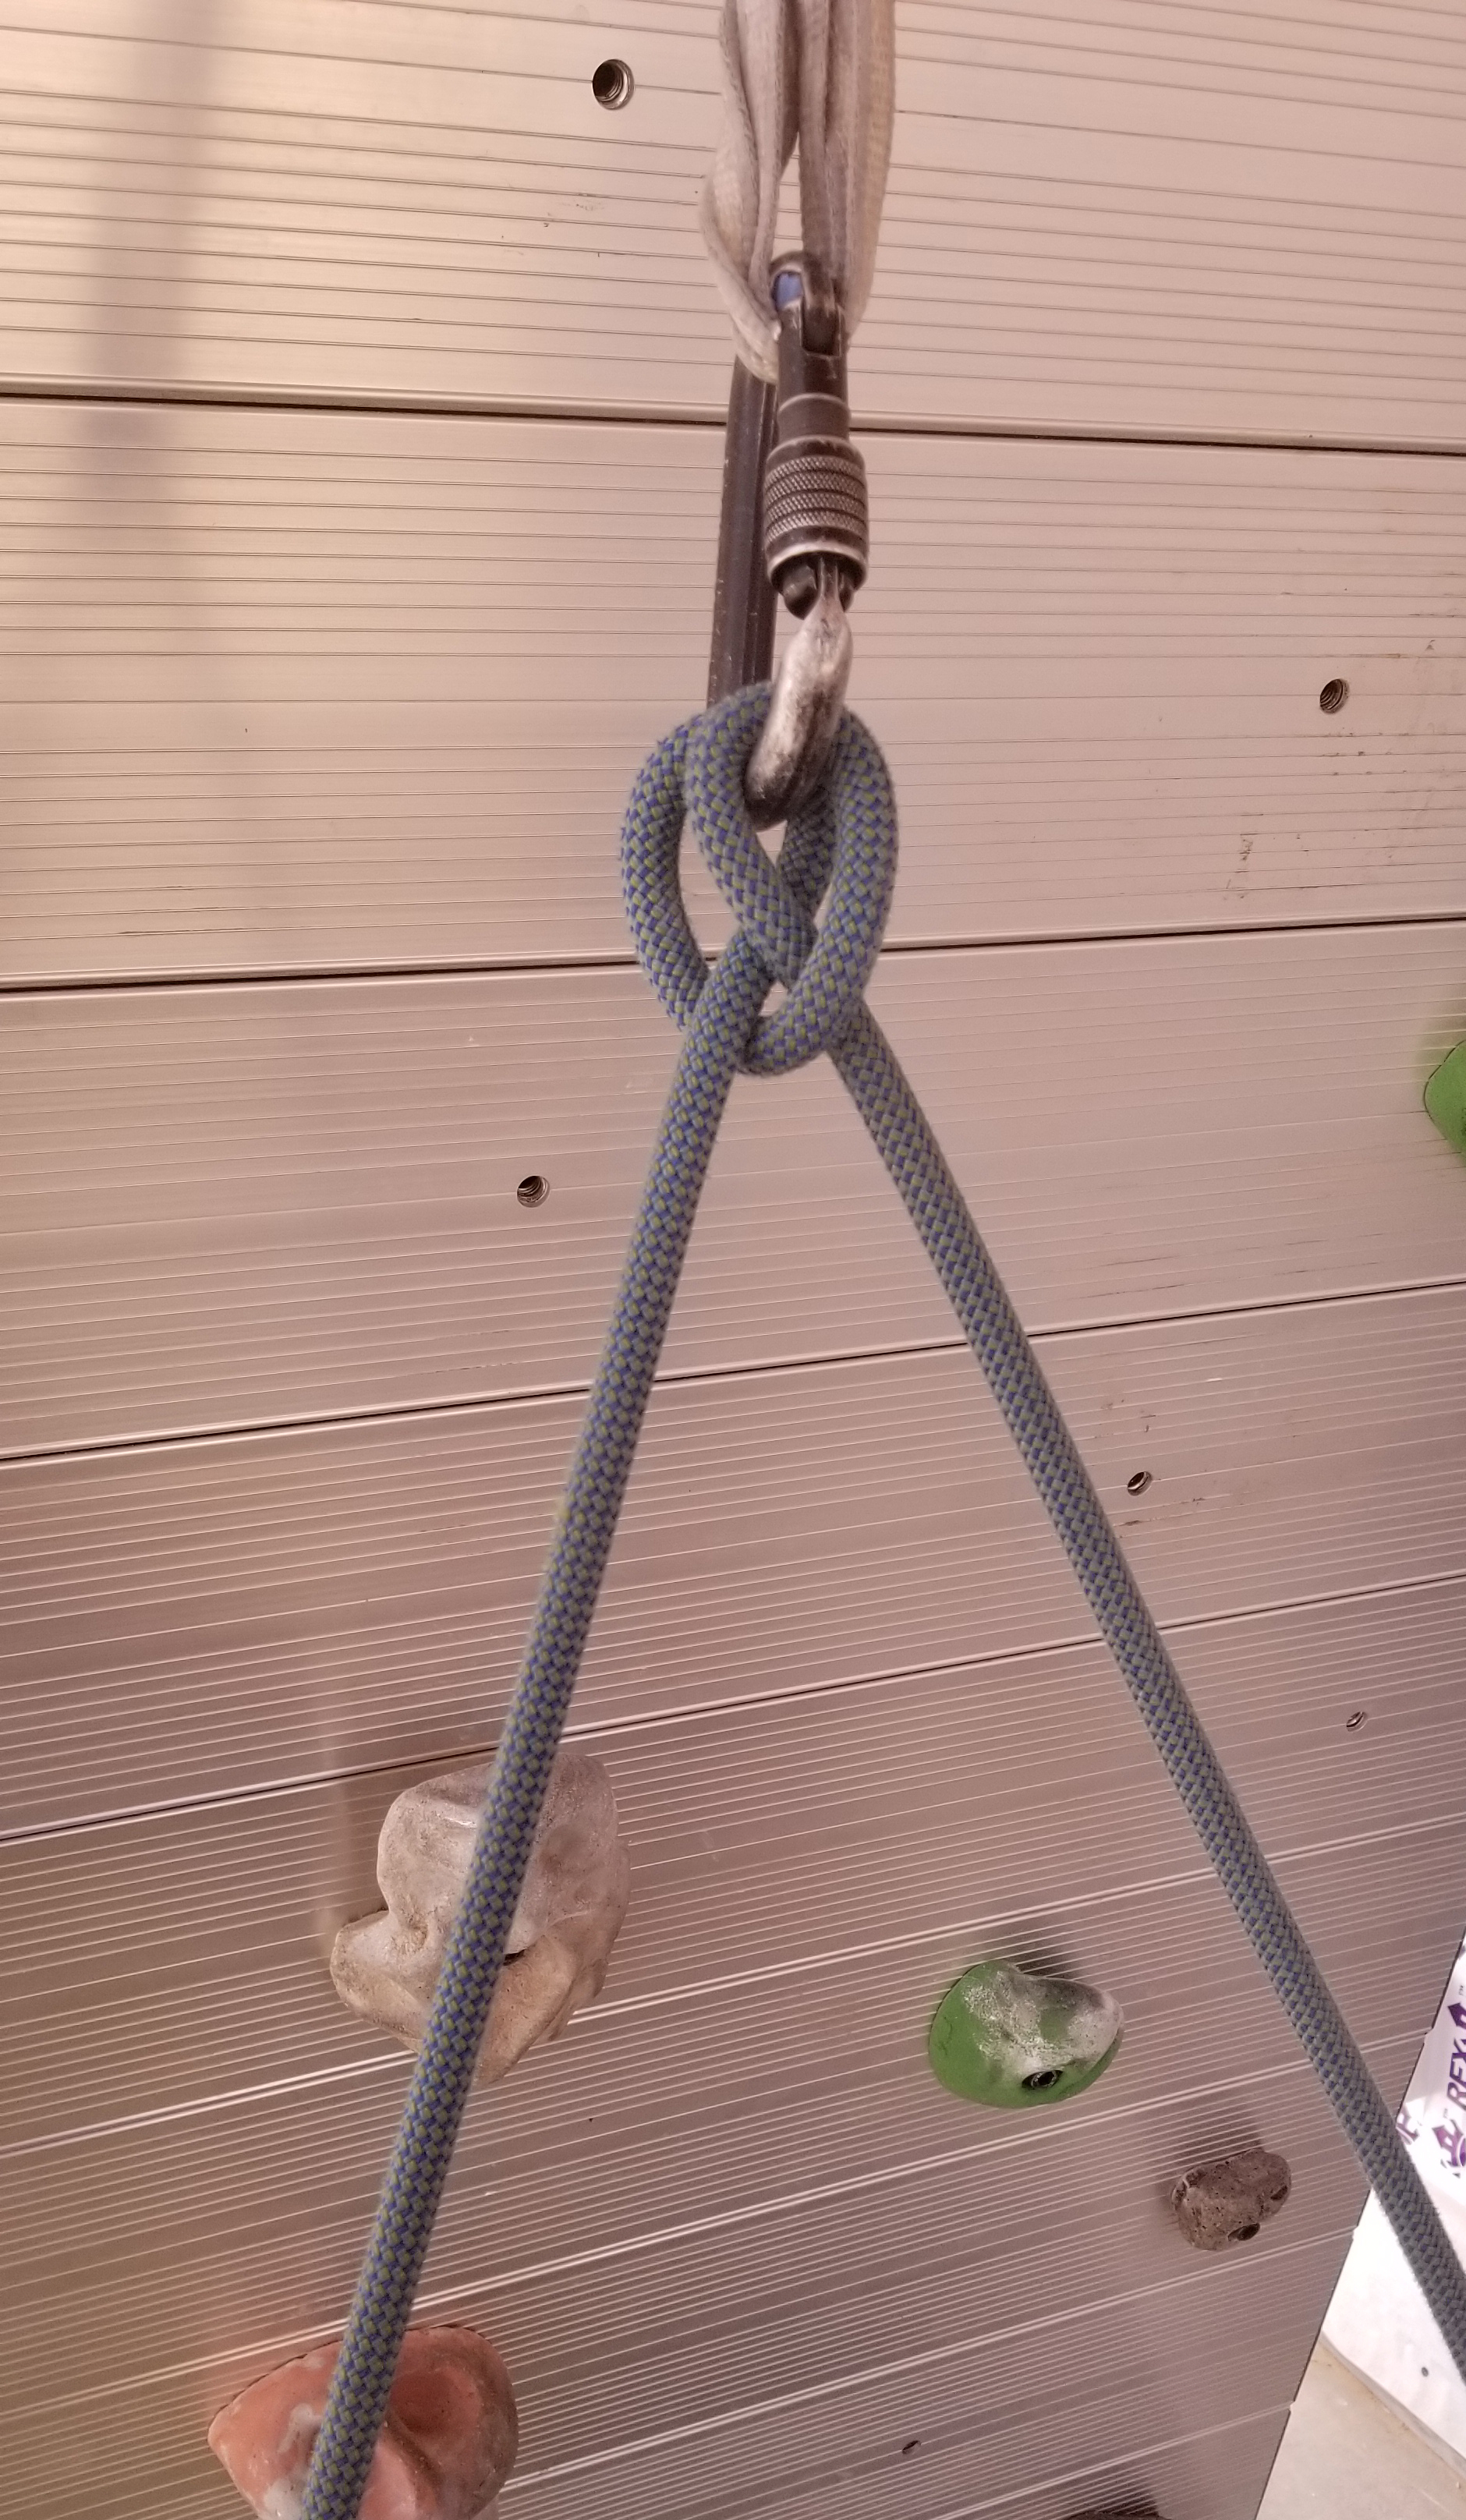 Attach to the anchor with a clove hitch